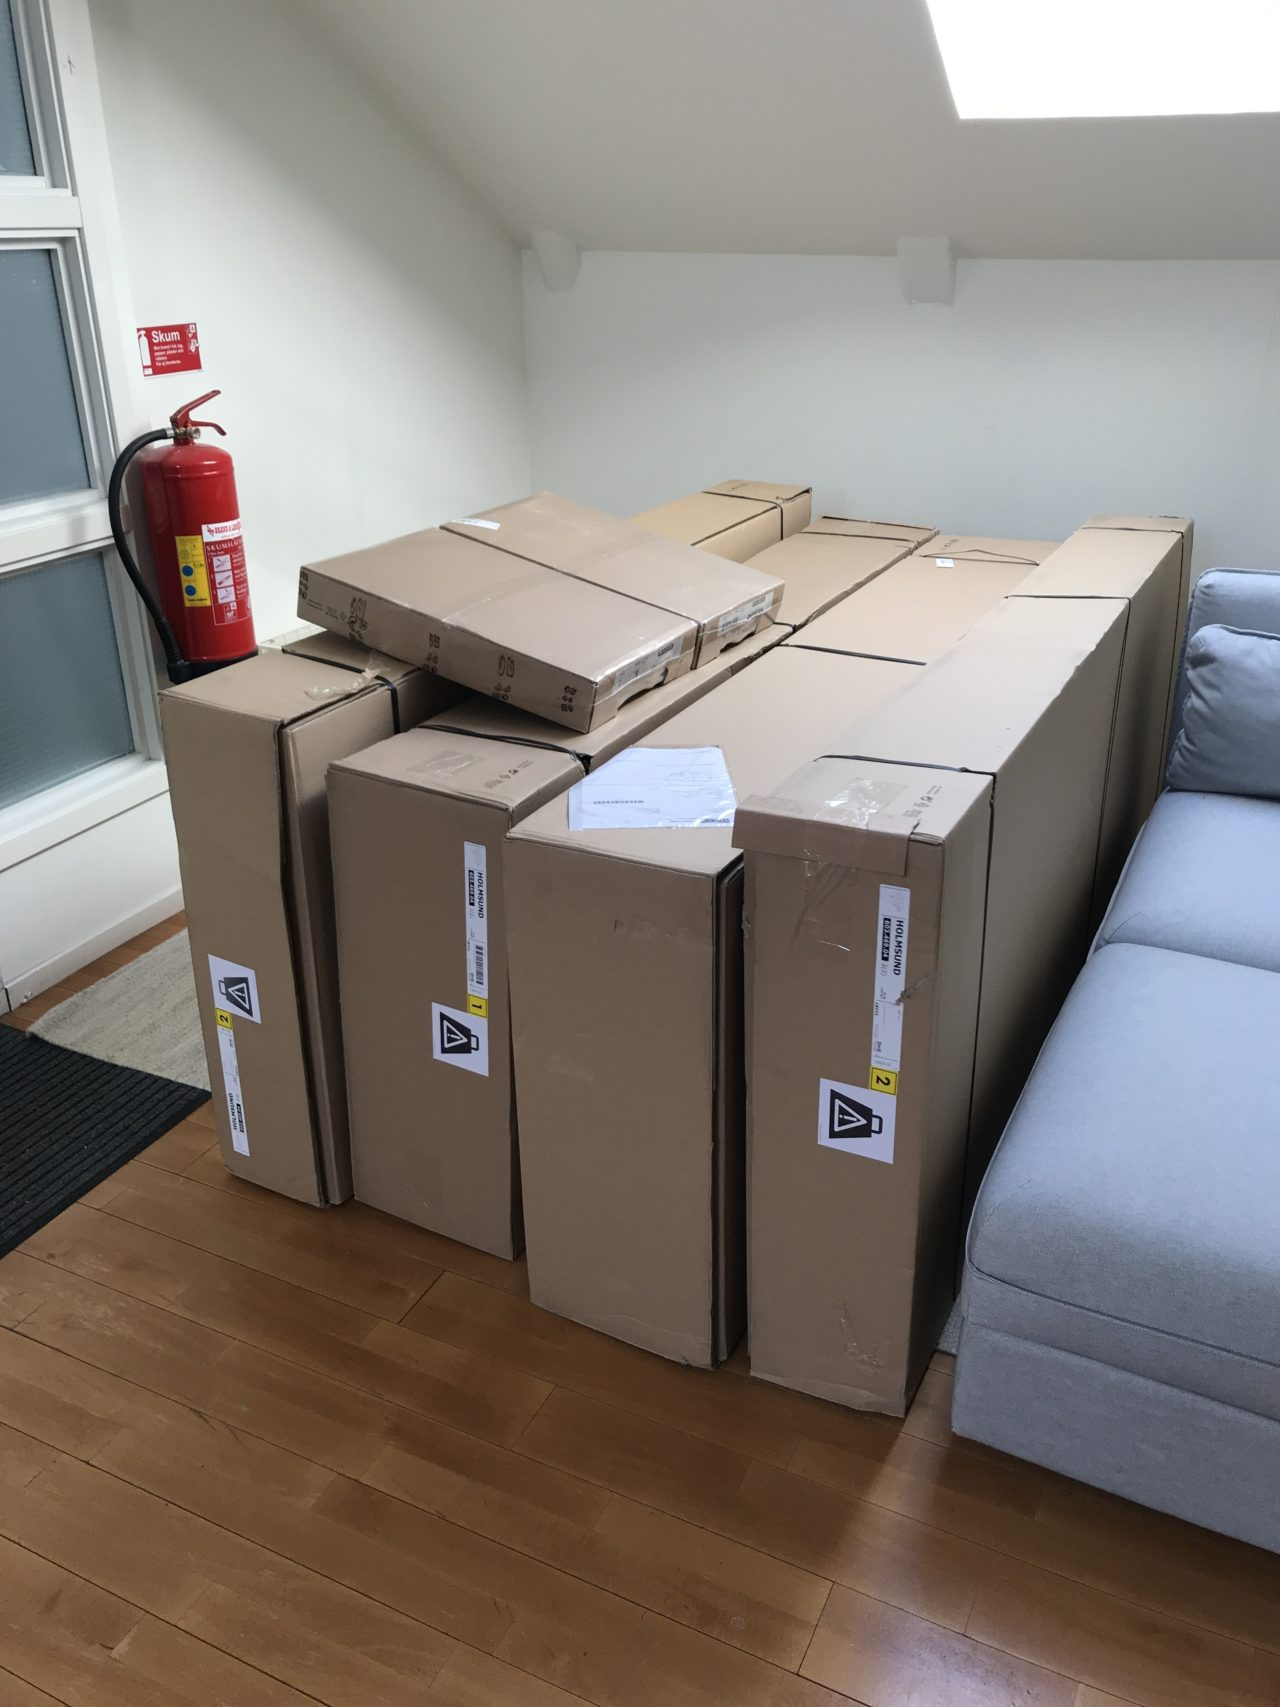 Cardboard Boxes With Furniture Lined Up Beside Each Other